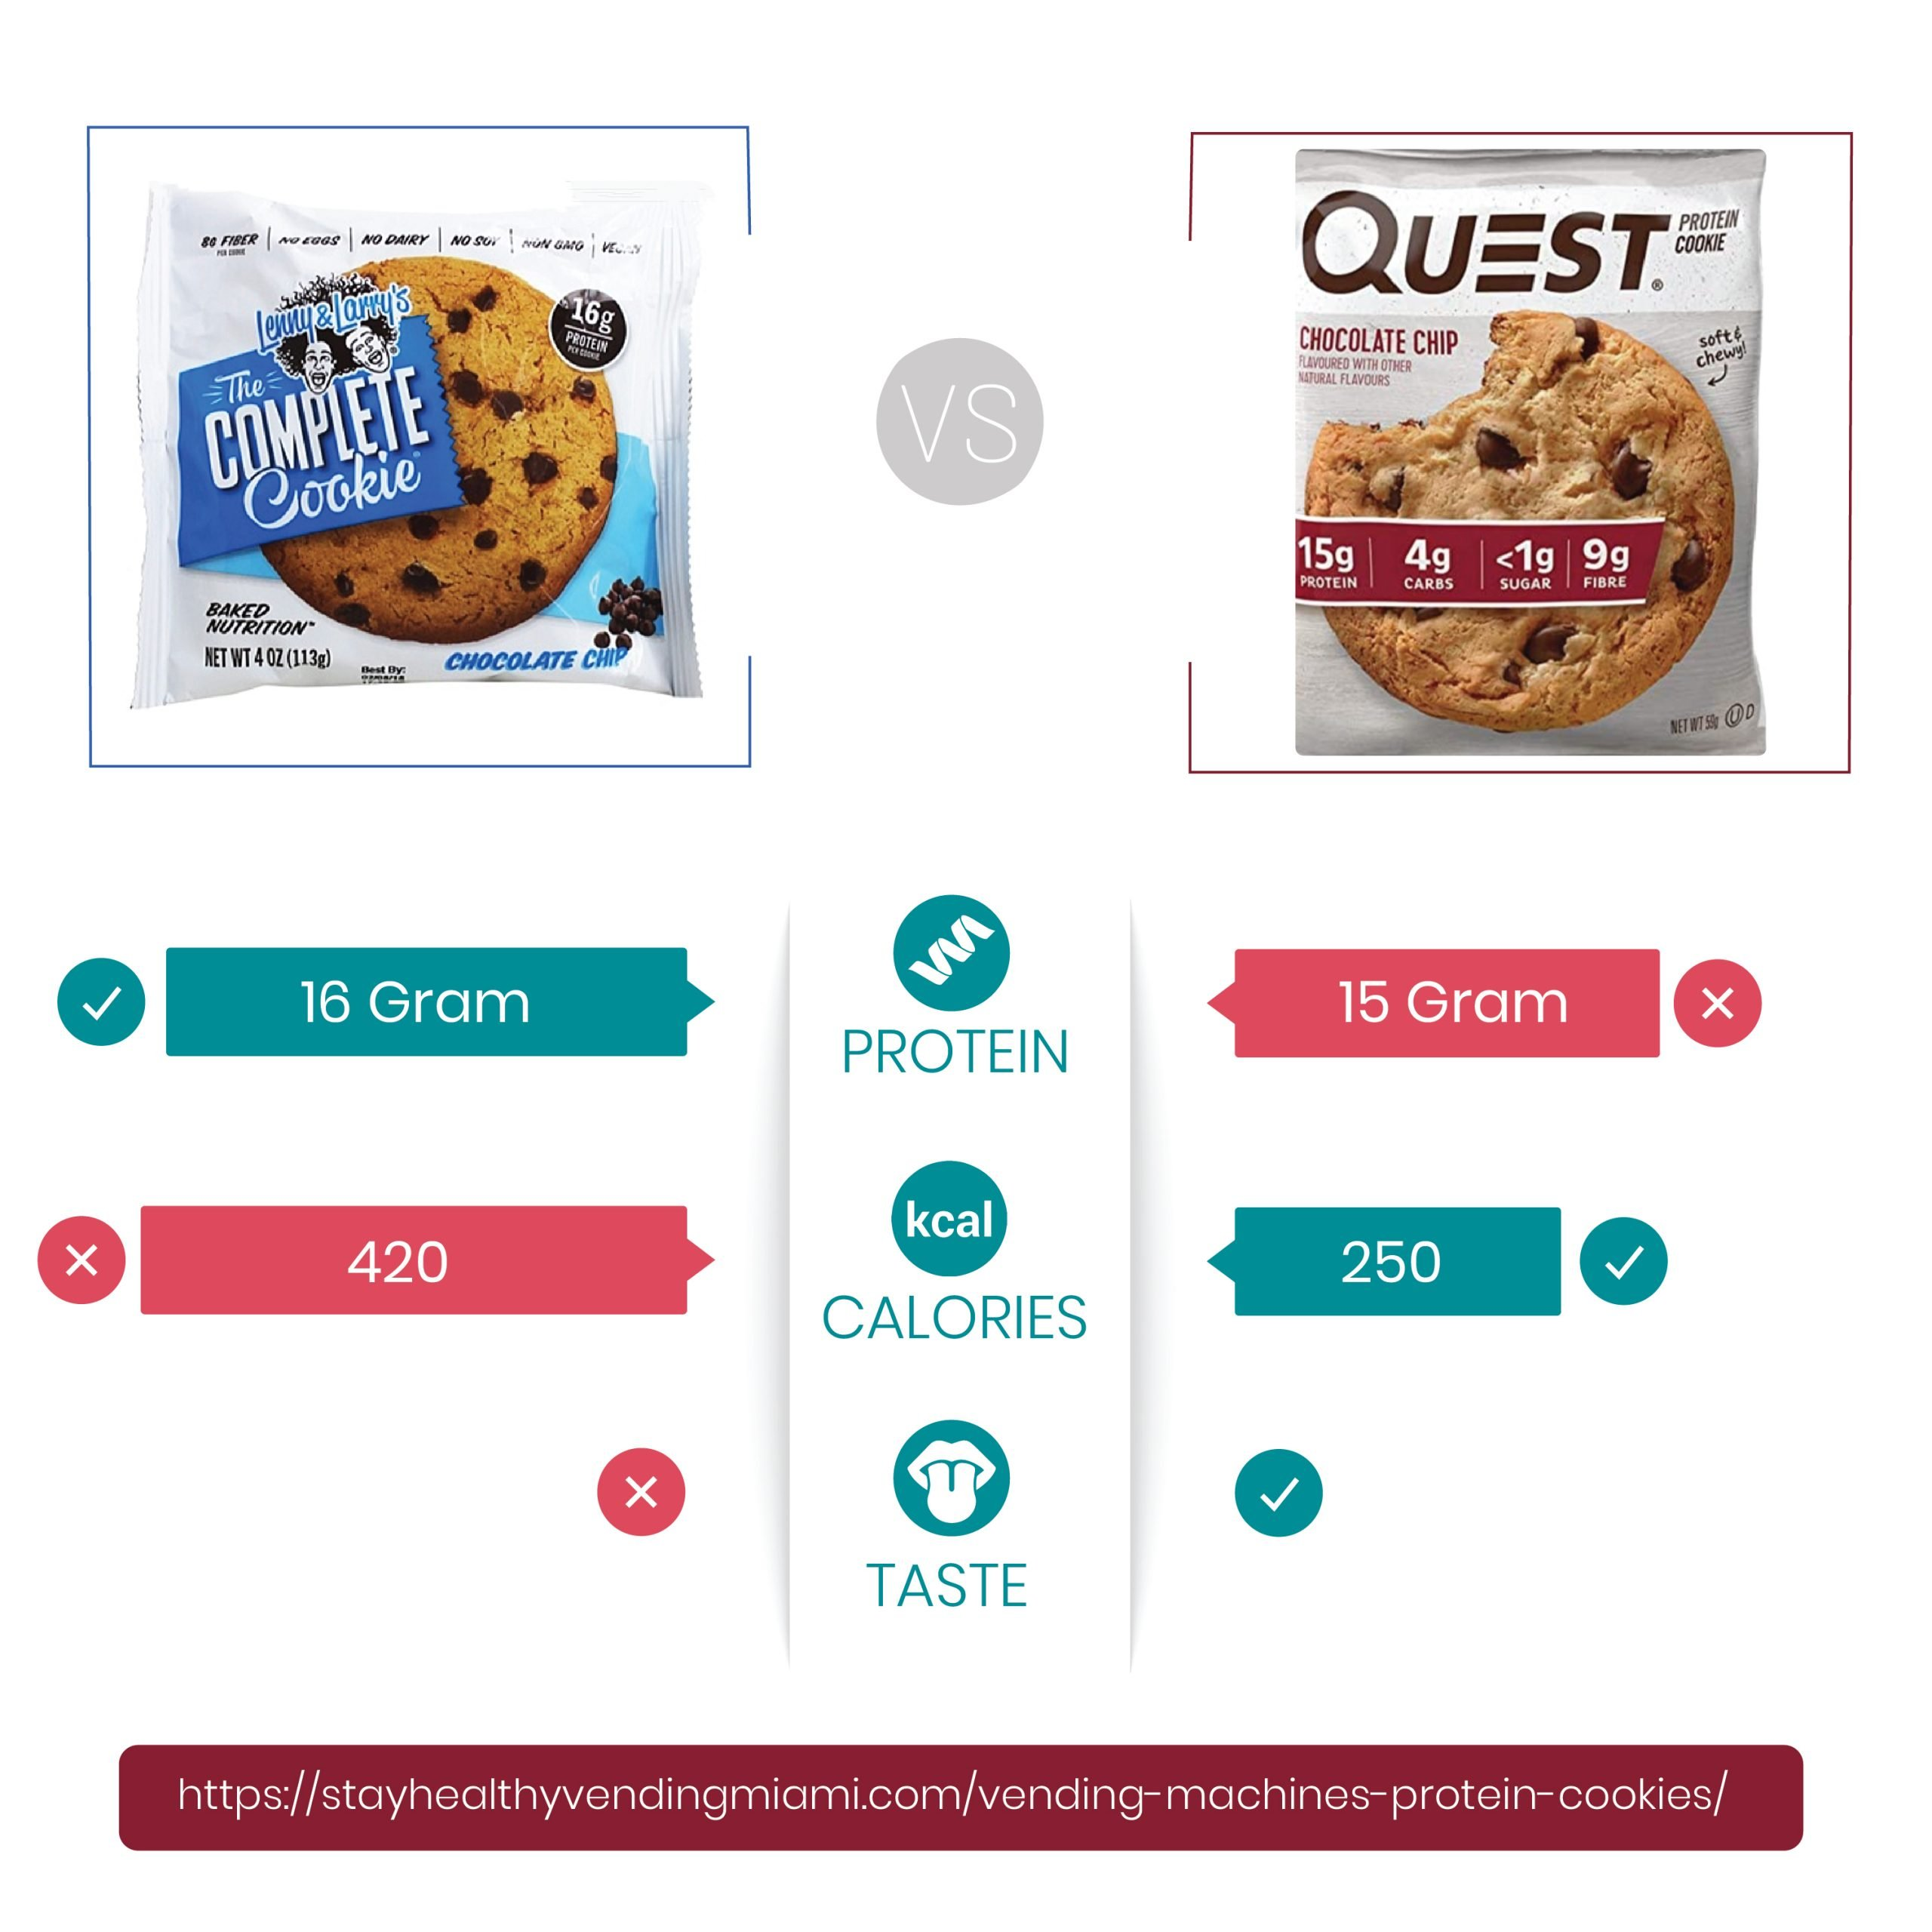 An info-graphic comparing the quest protein cookie and The Lenny and Larry's protein cookie